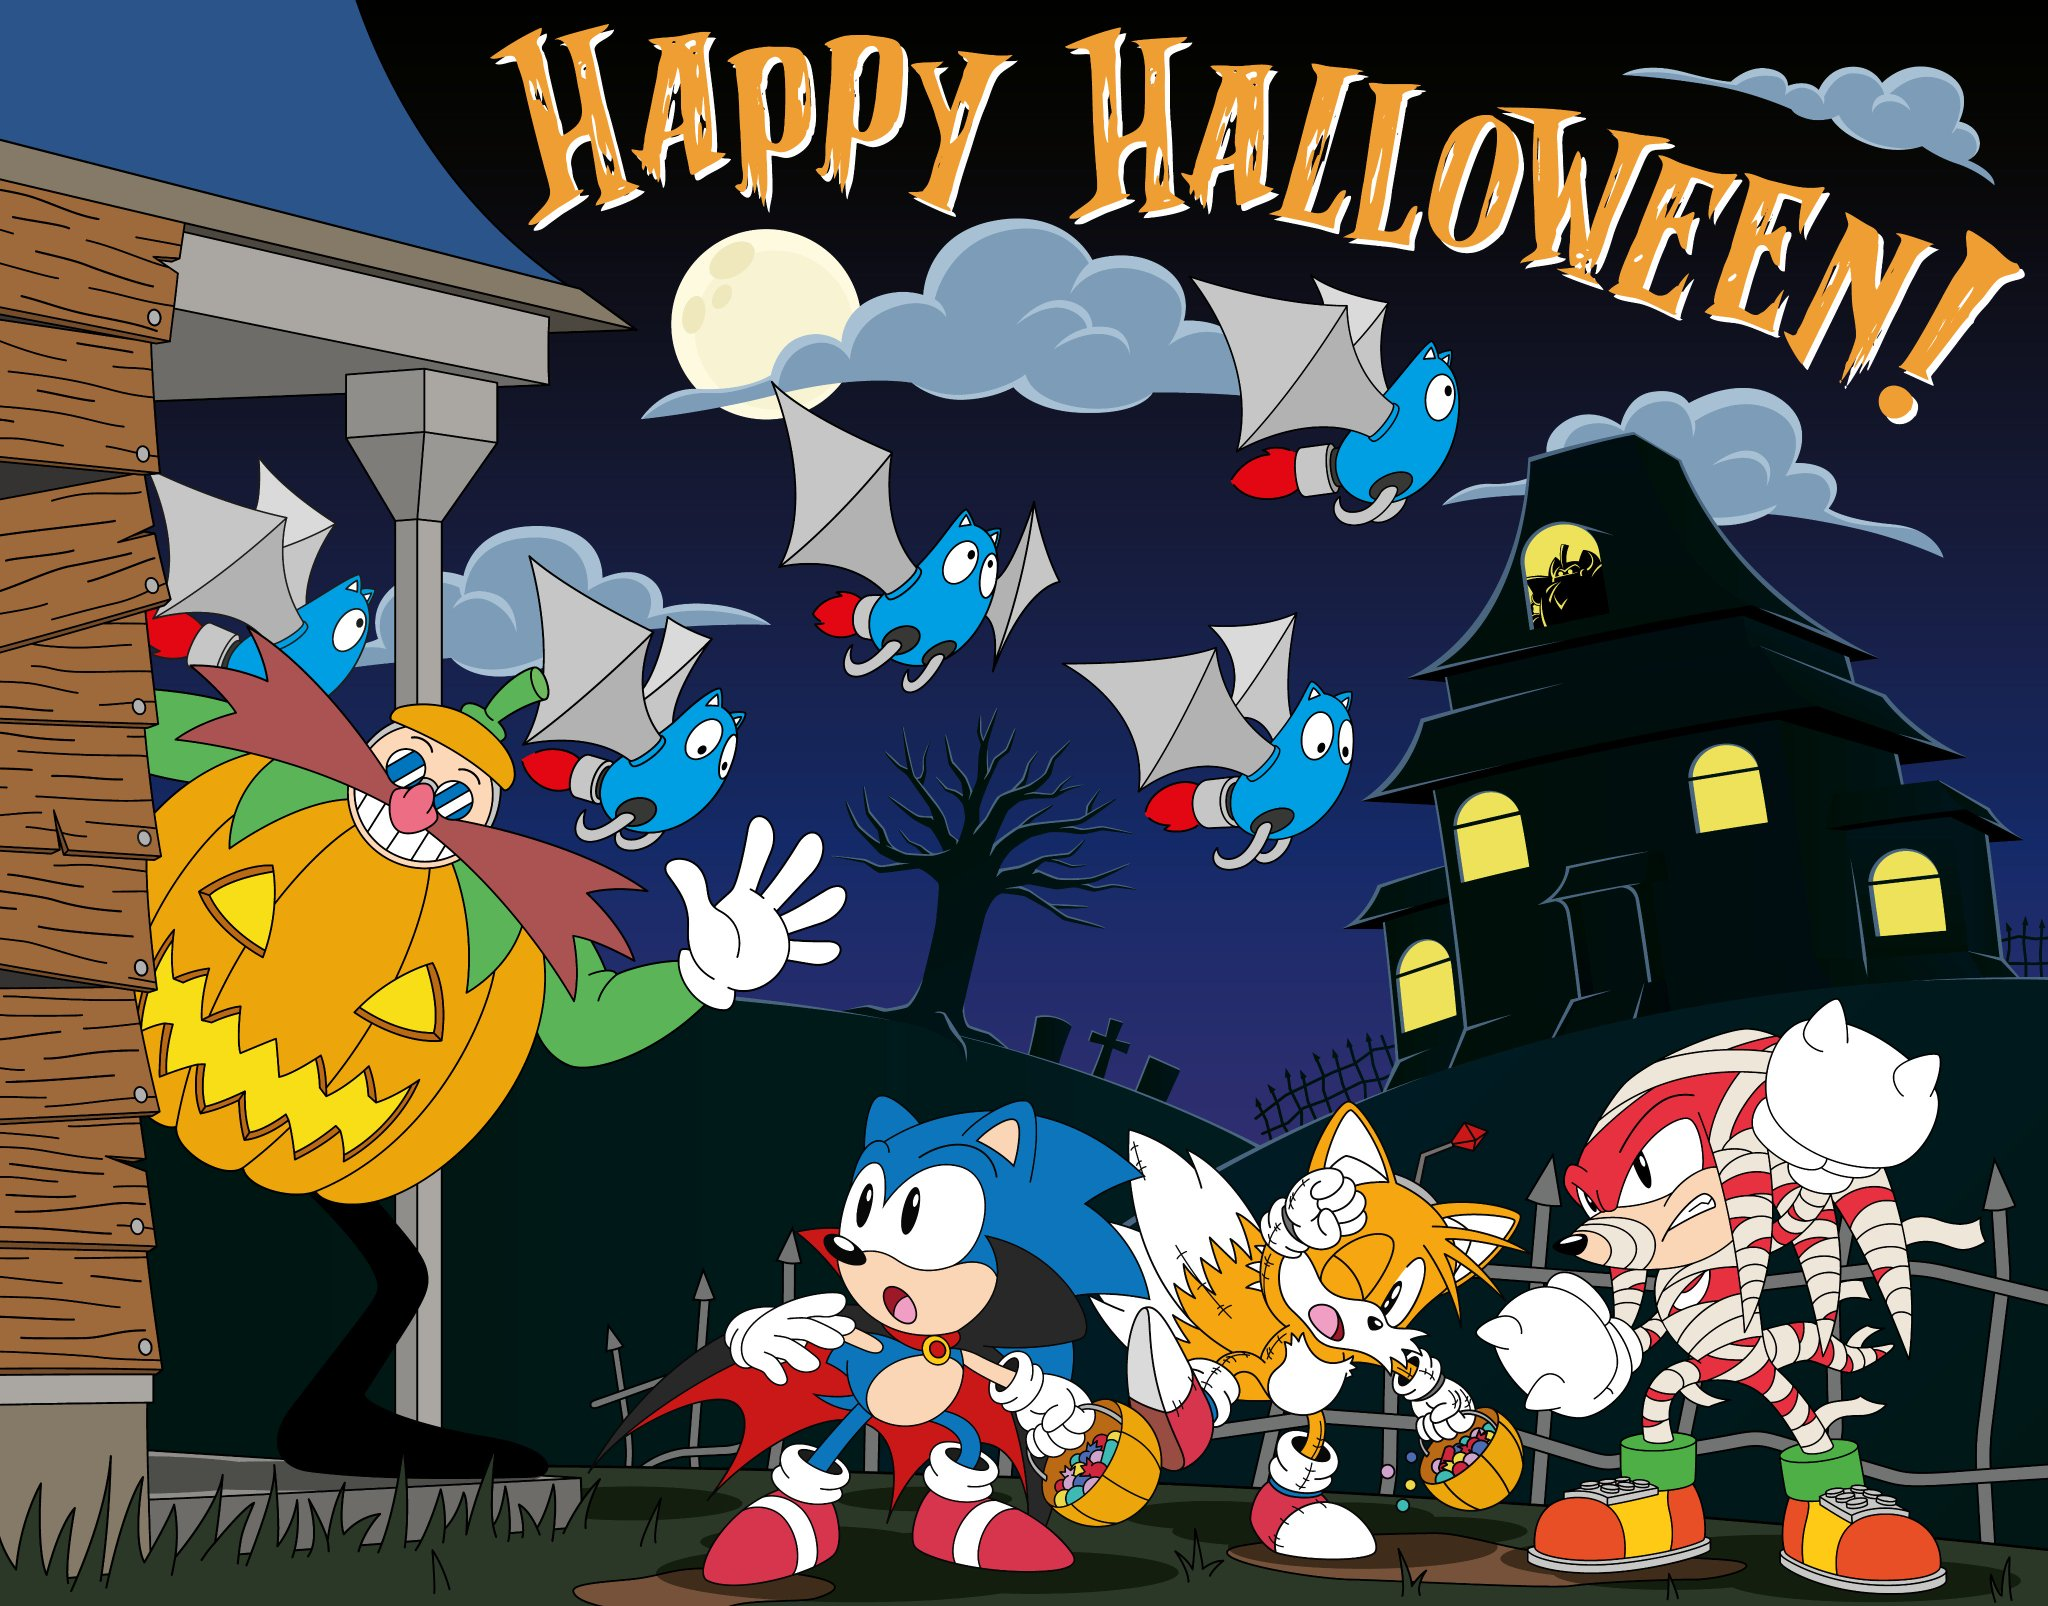 Happy Halloween, from all of us at SEGA! https://t.co/79OJqYXEID